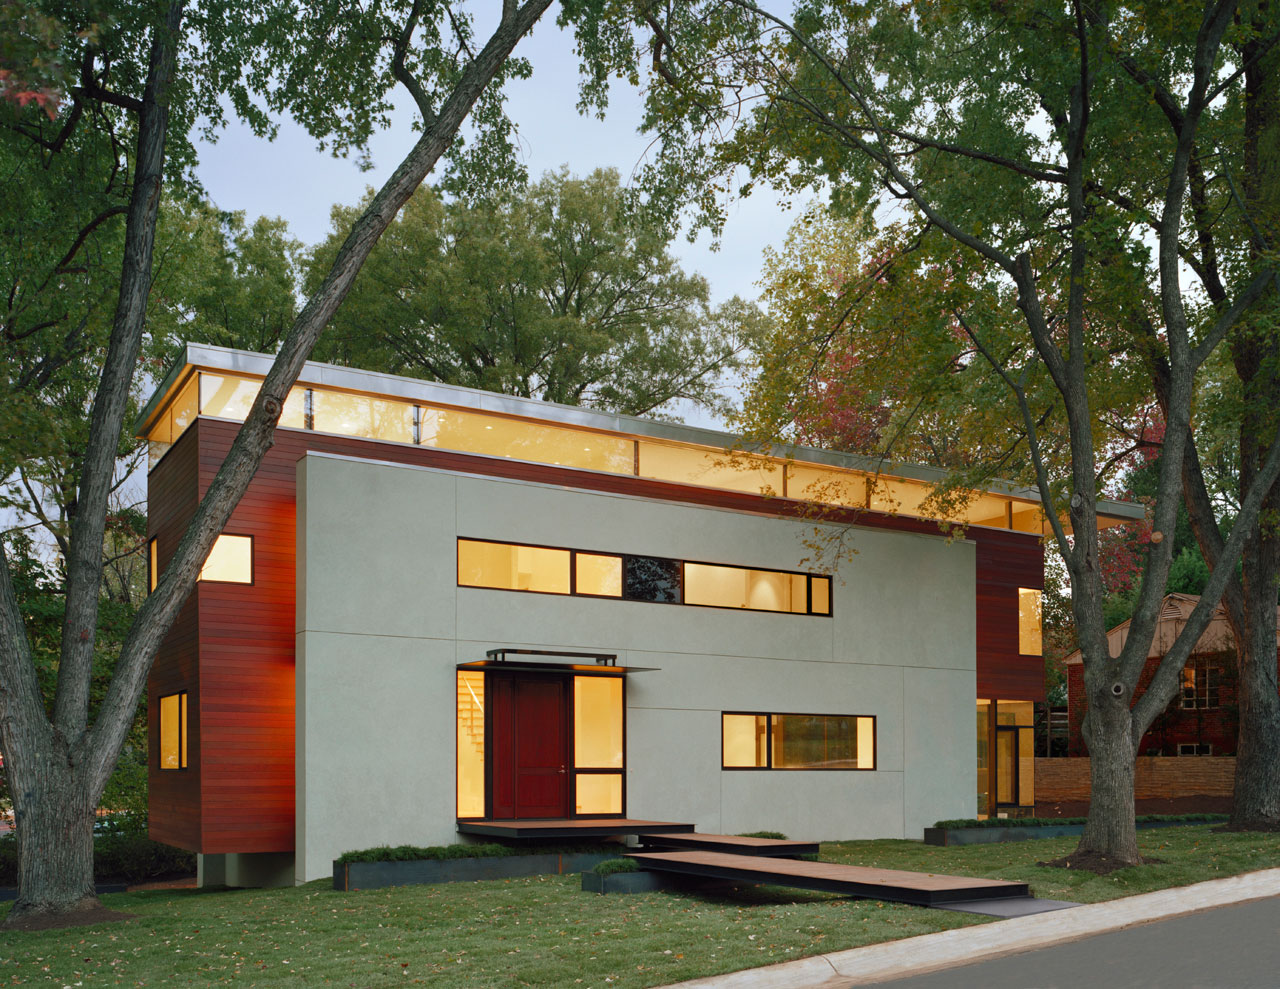 Matryoshka house by david jameson architect - The edgemoor residence by david jameson architect ...